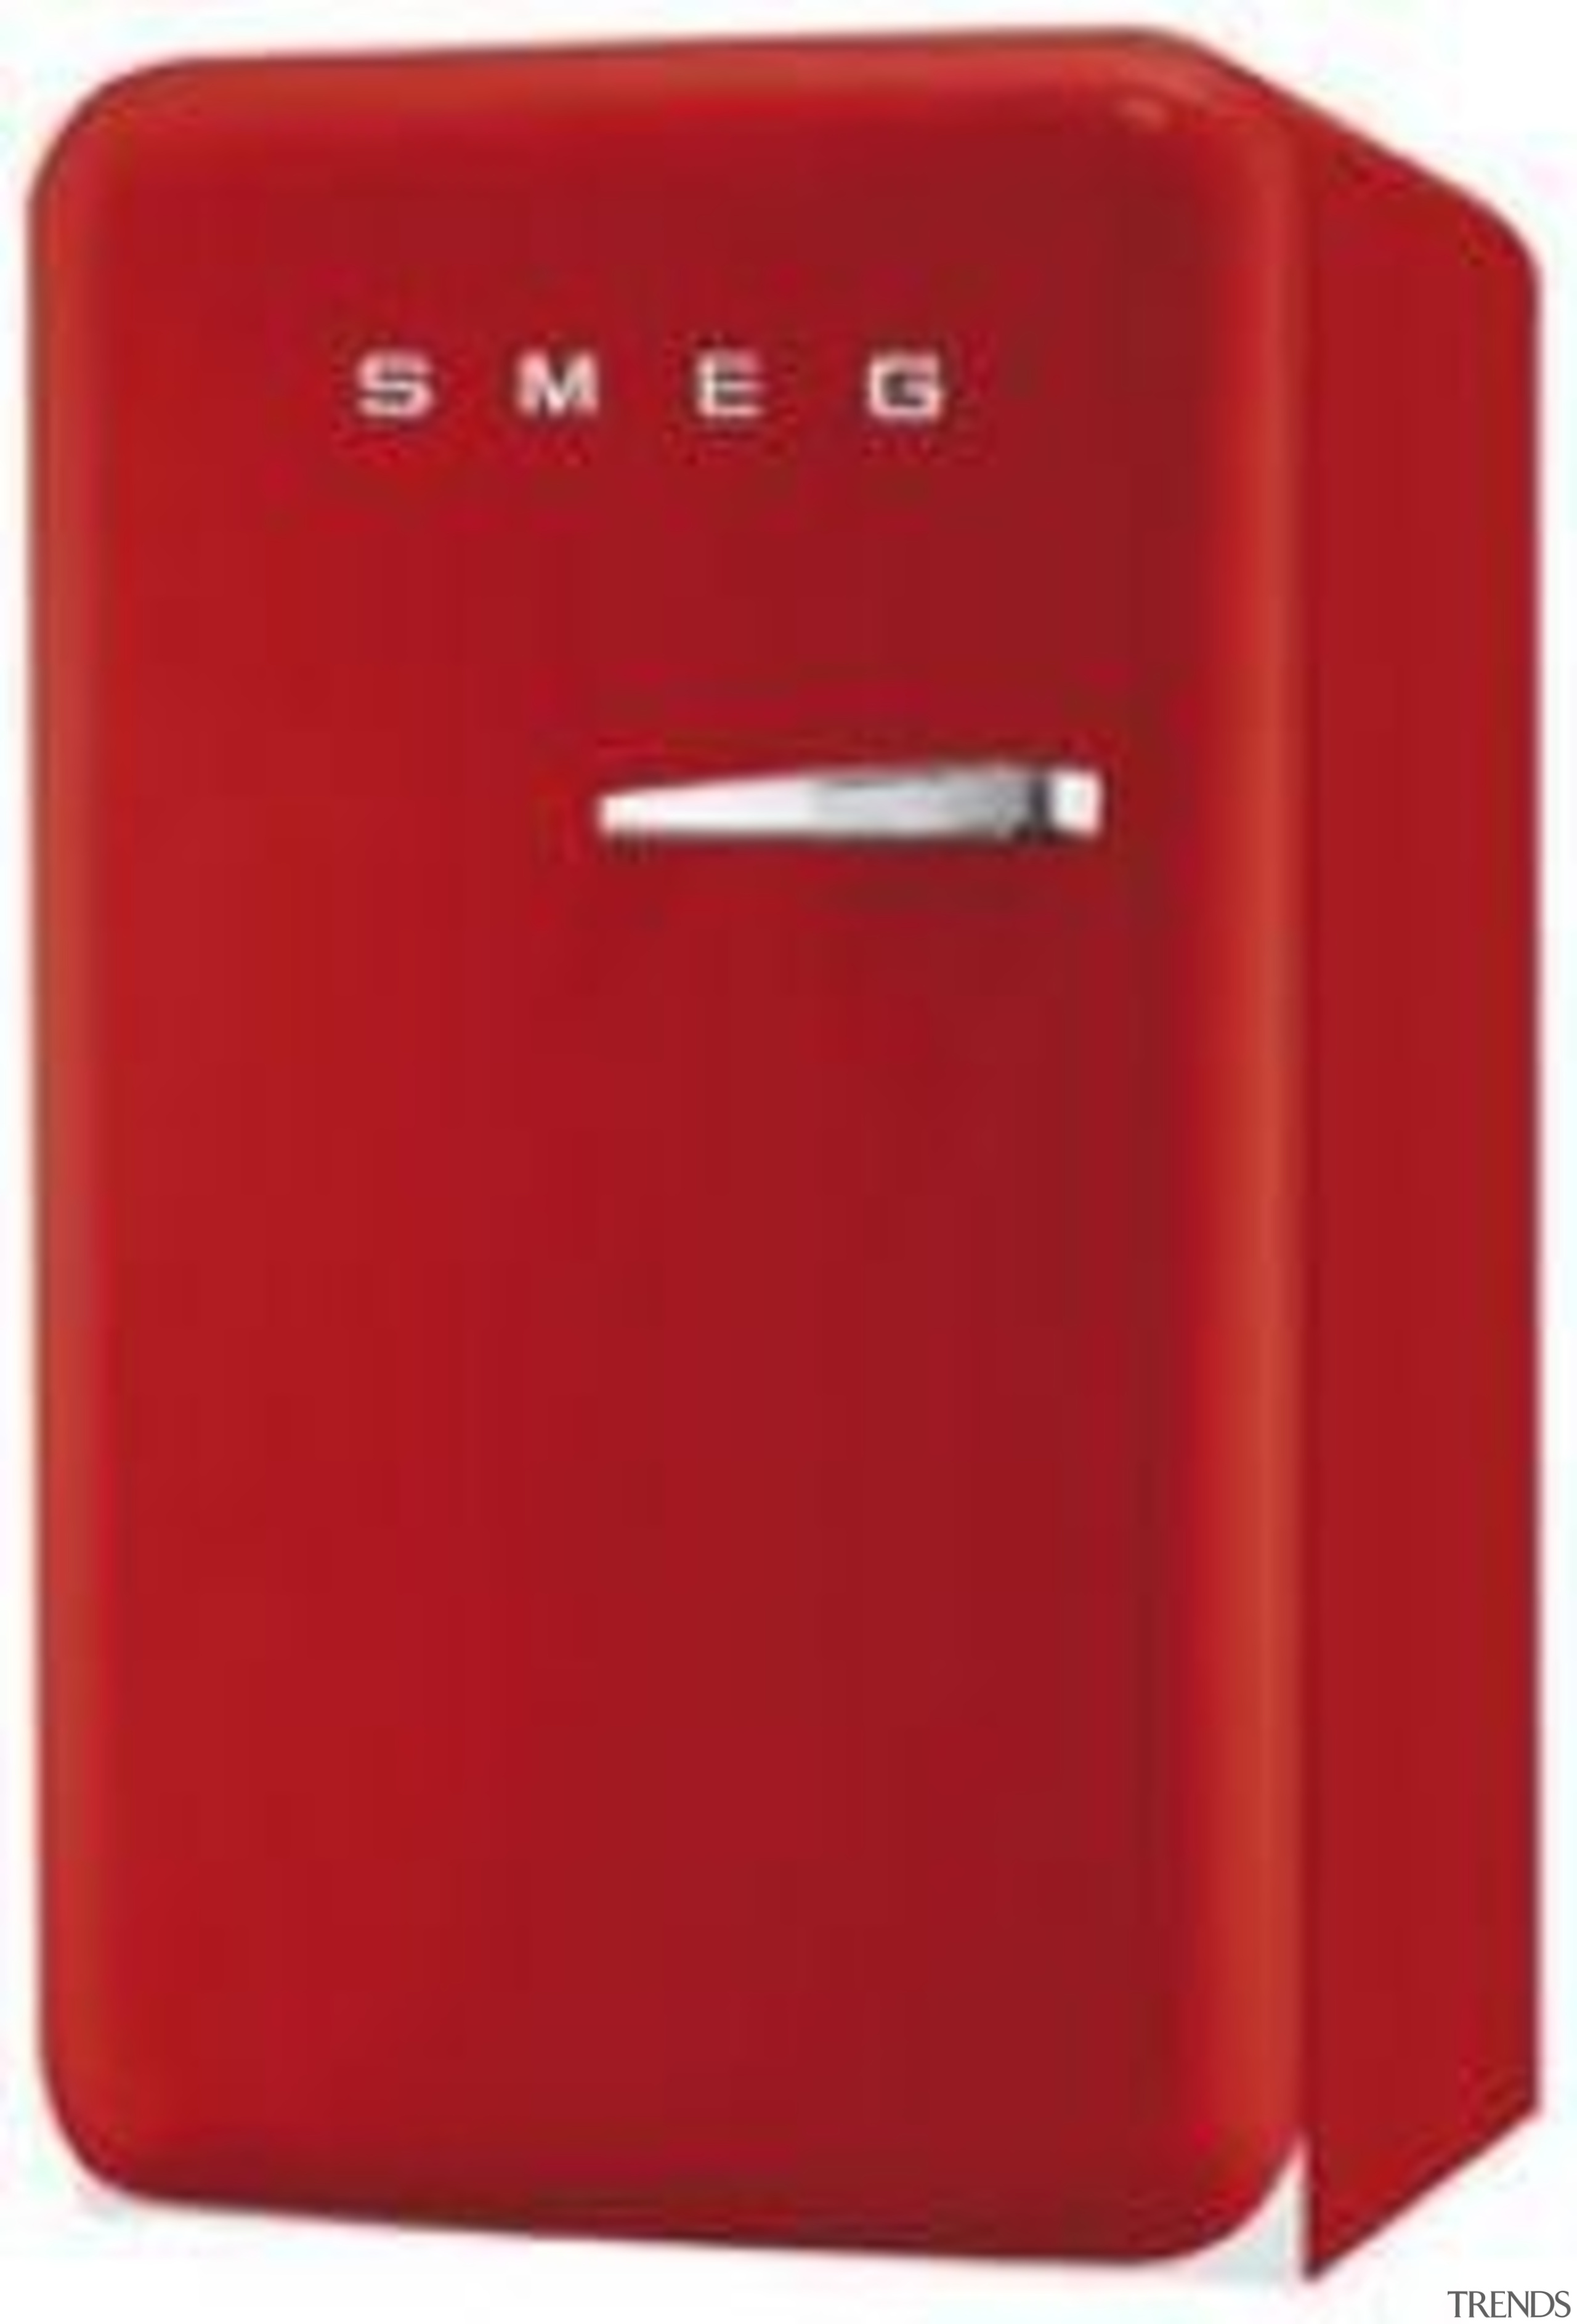 We love this fab red fridge from Smeg home appliance, product, product design, red, telephony, red